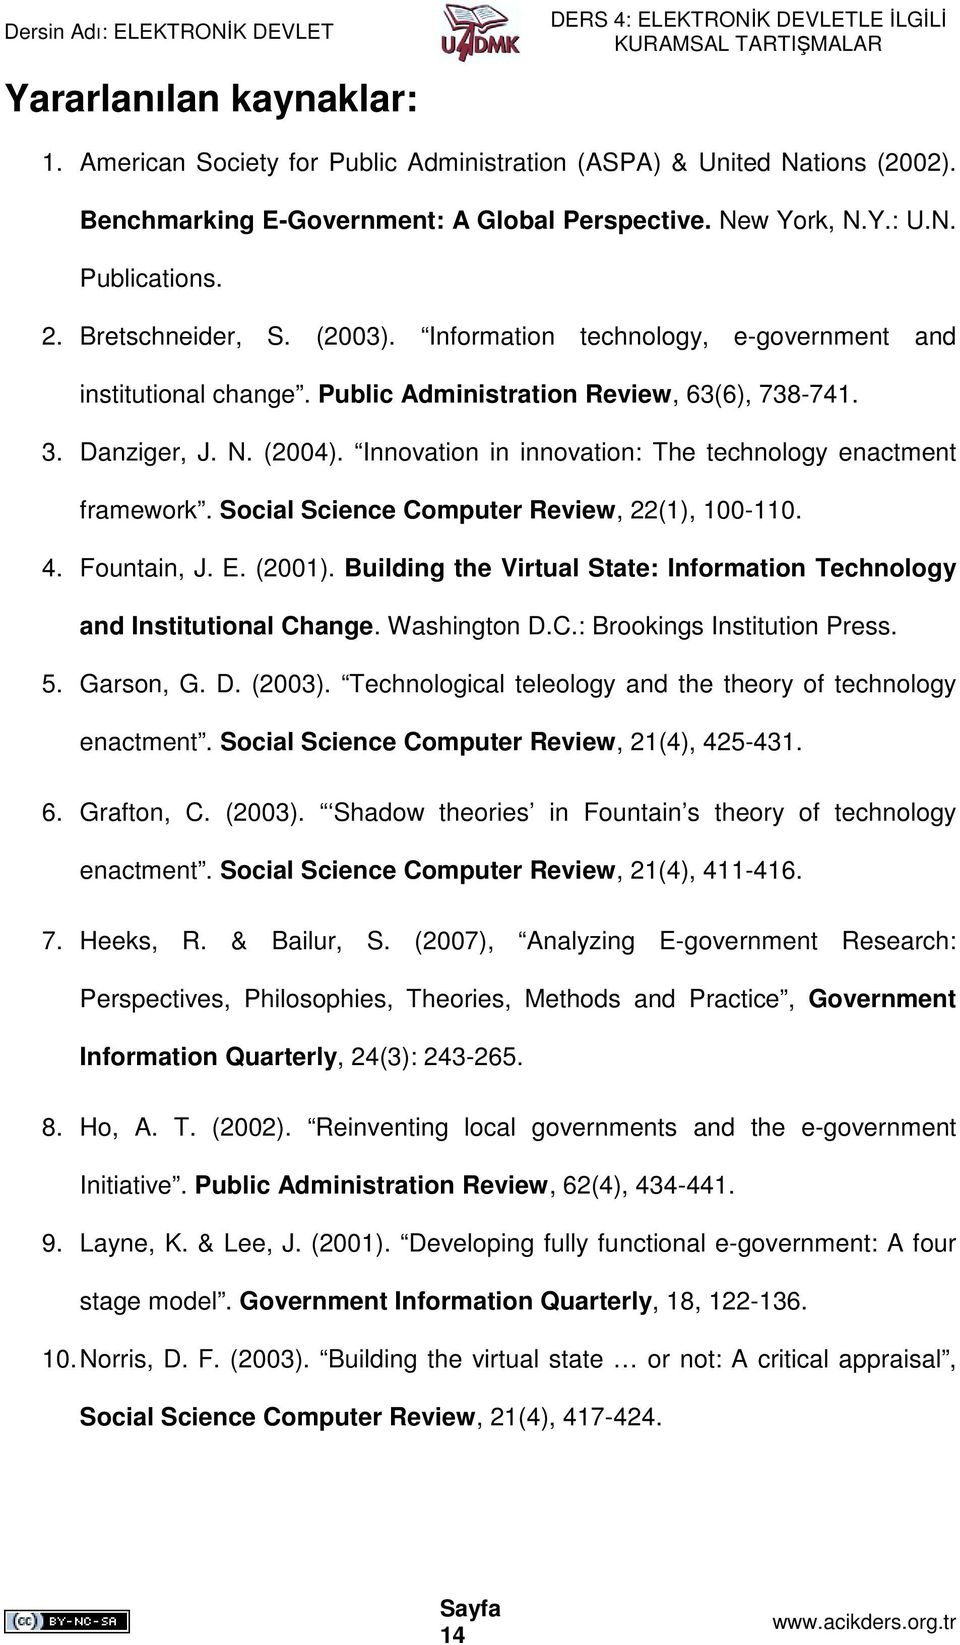 Innovation in innovation: The technology enactment framework. Social Science Computer Review, 22(1), 100-110. 4. Fountain, J. E. (2001).